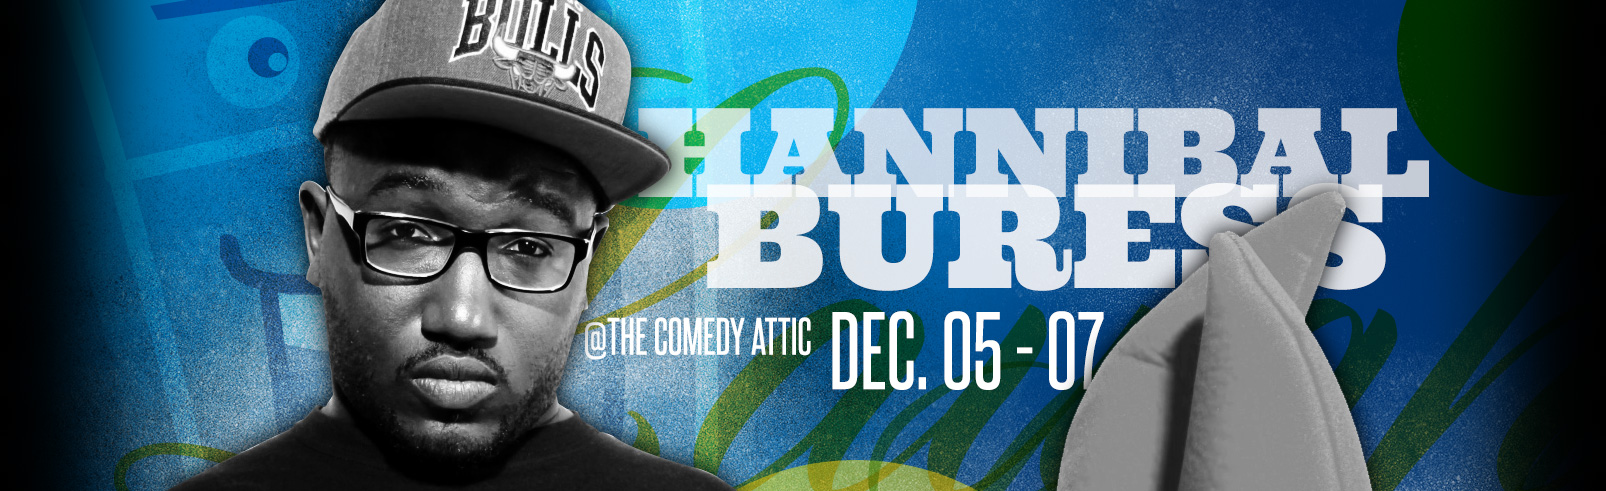 Hannibal Buress @ The Comedy Attic